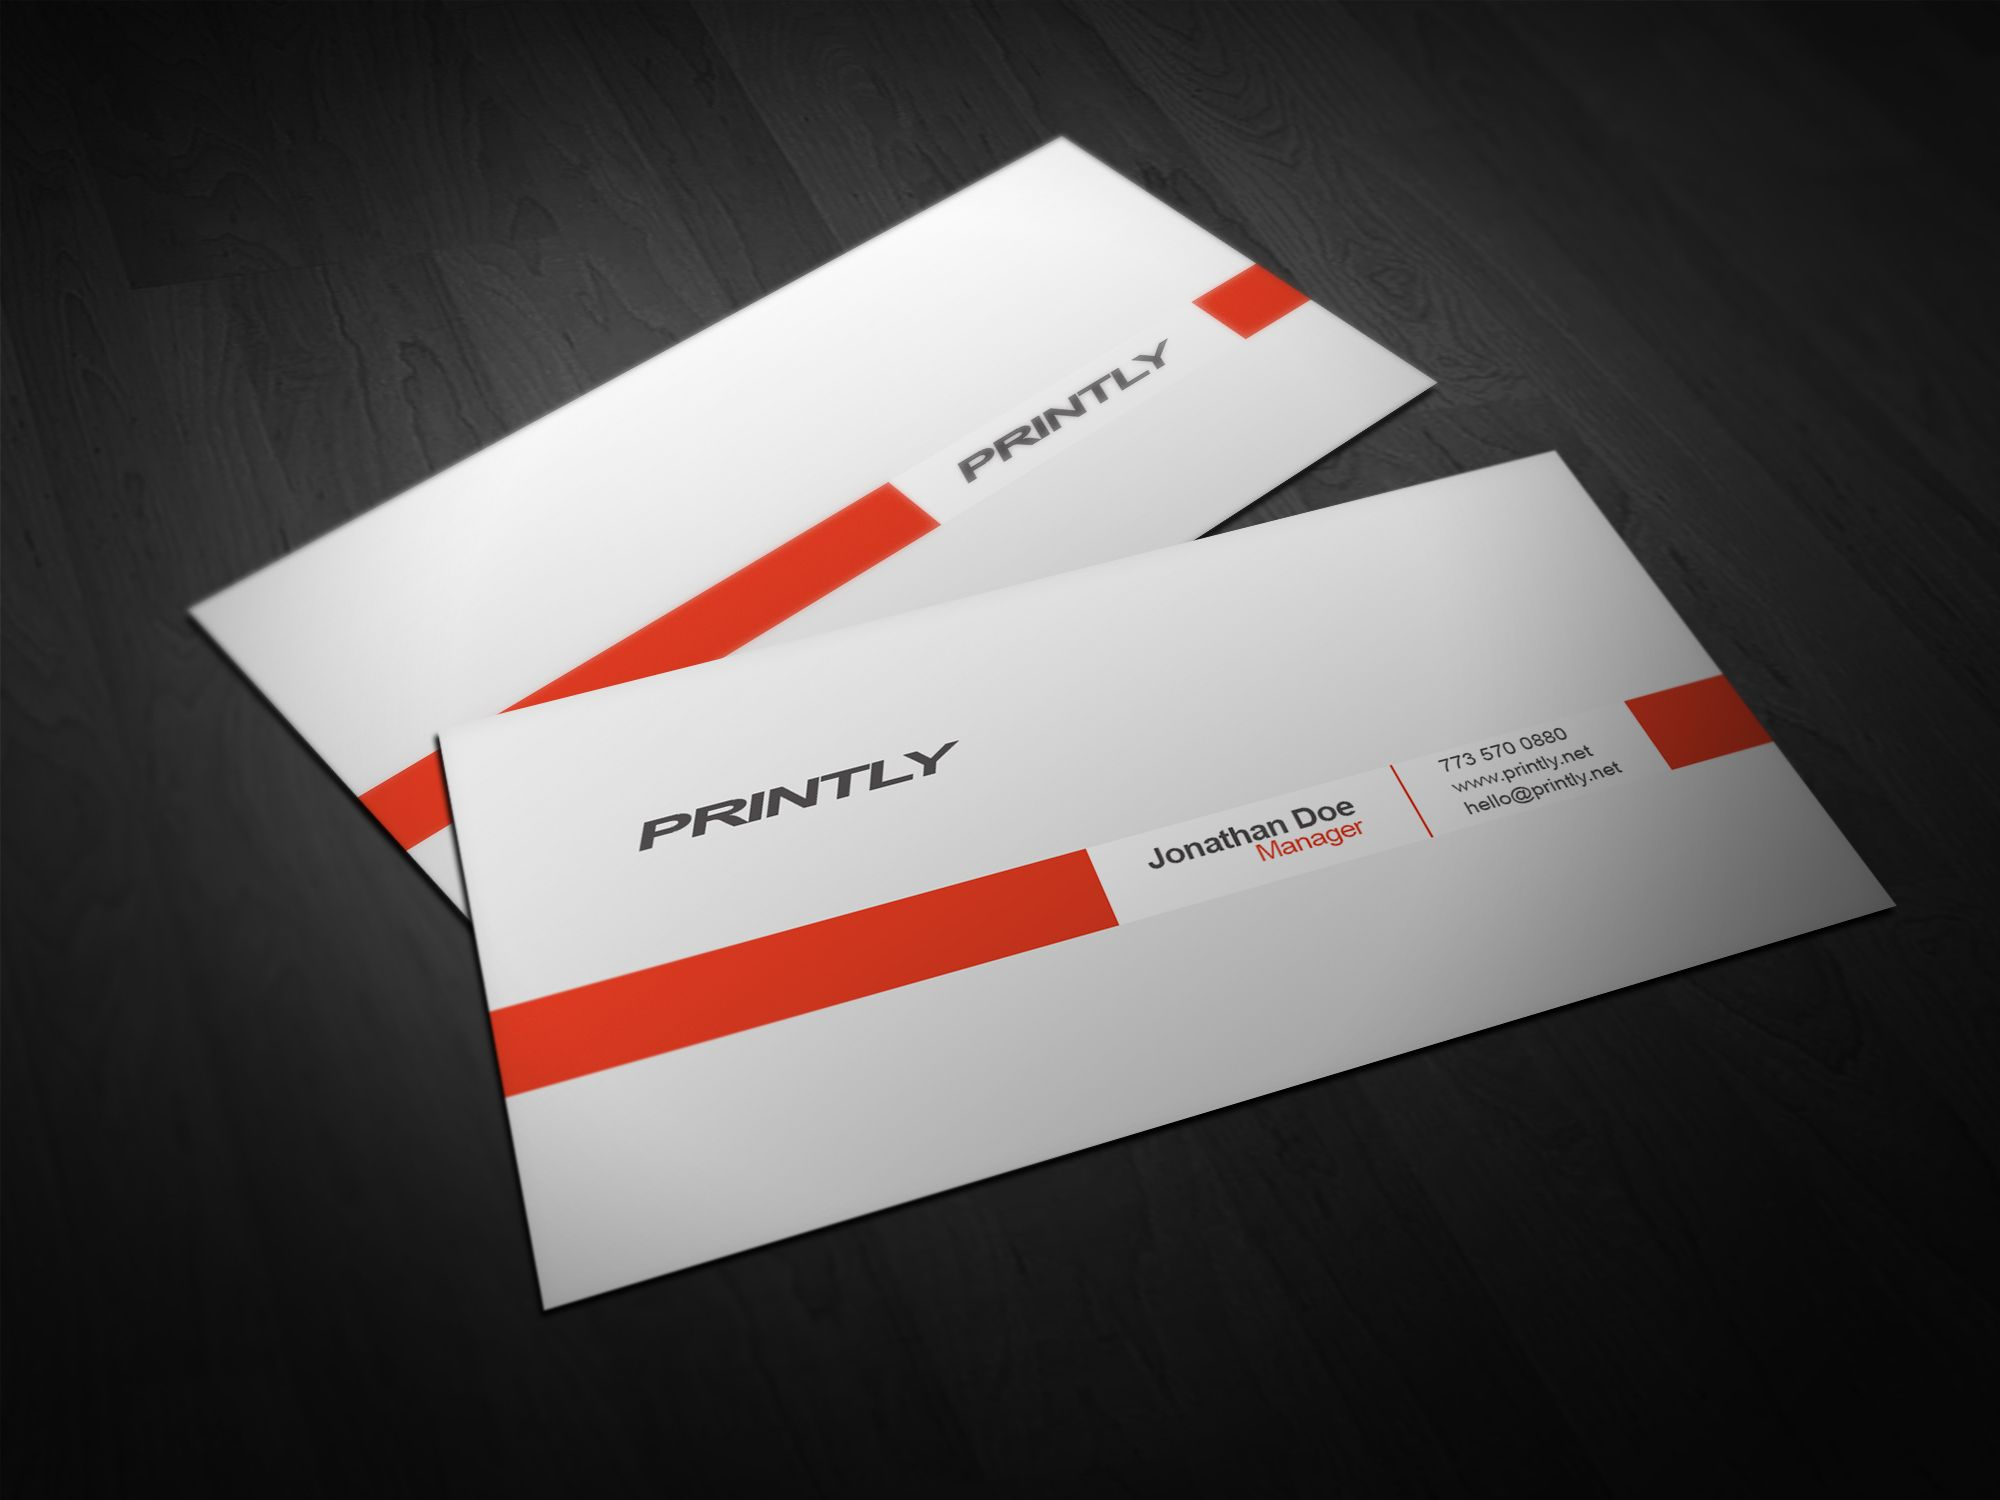 Free printly psd business card template printly design free printly psd business card template printly fbccfo Images